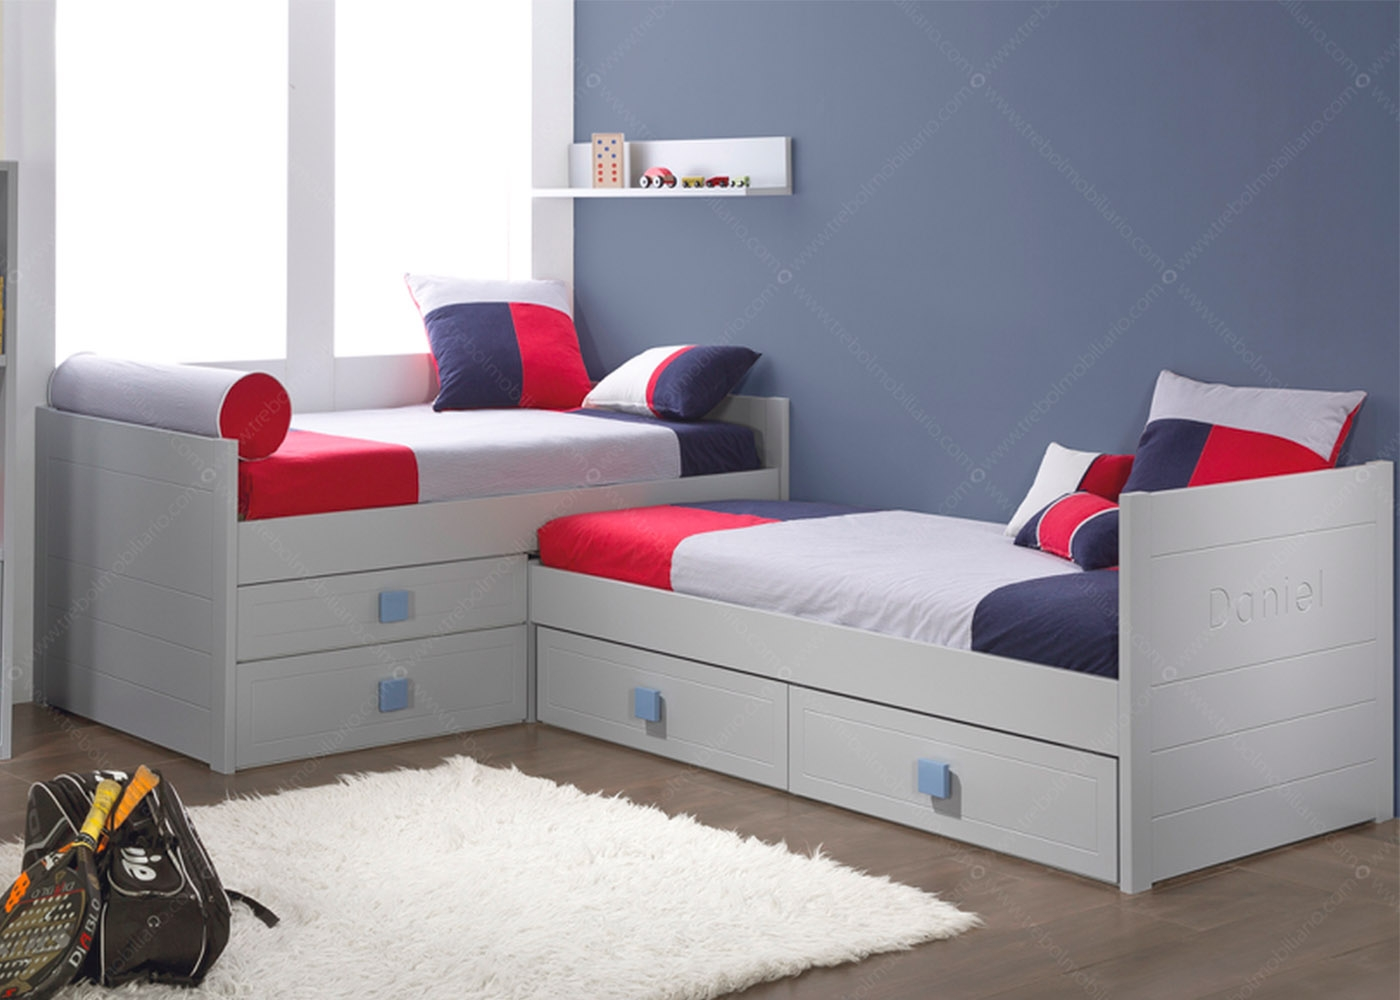 chambre pour 2 enfants avec 2 lits et biblioth que de qualit. Black Bedroom Furniture Sets. Home Design Ideas